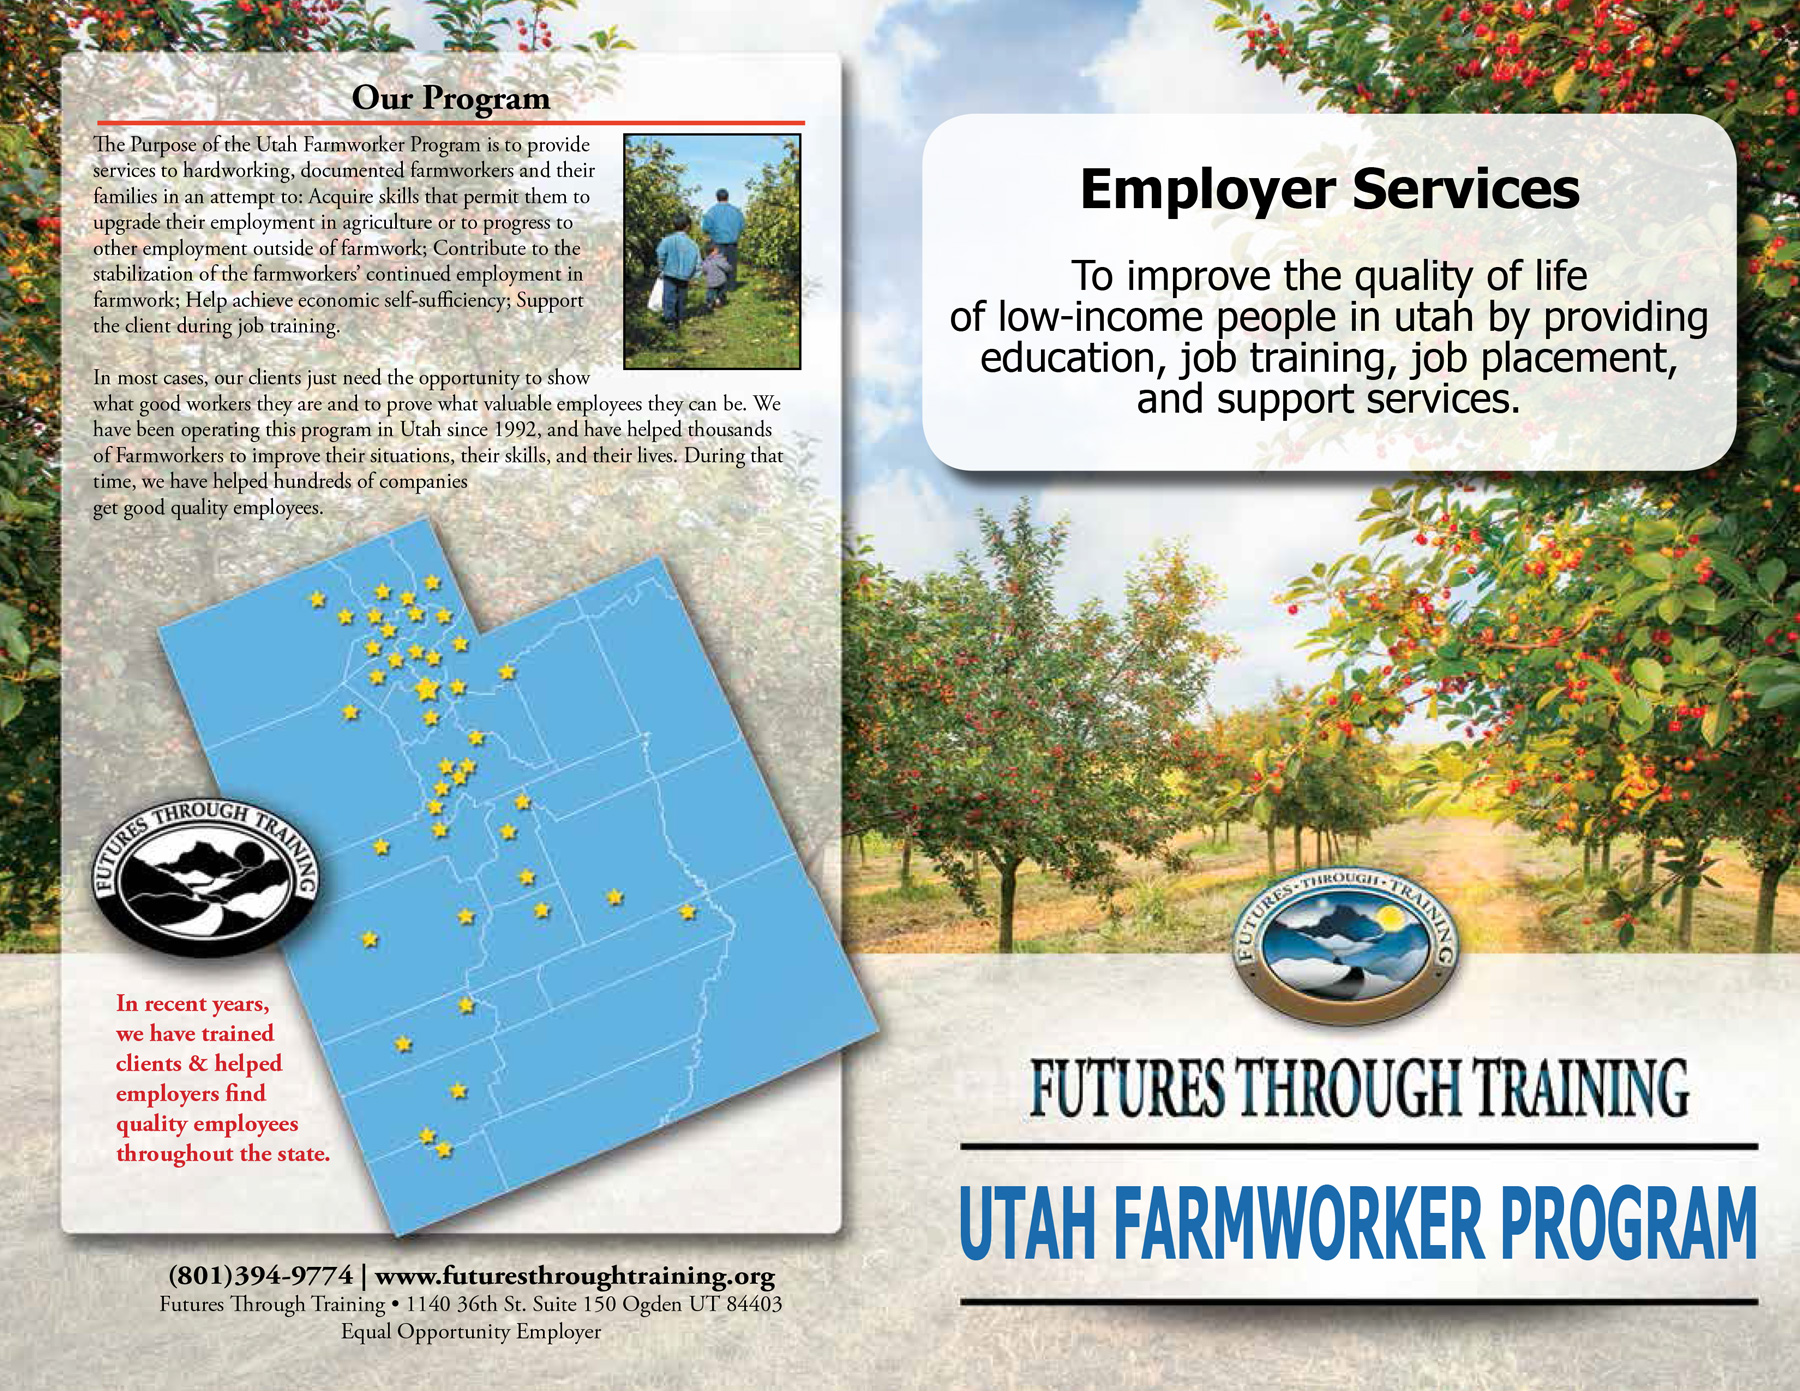 Employer Services Brochure, 2016